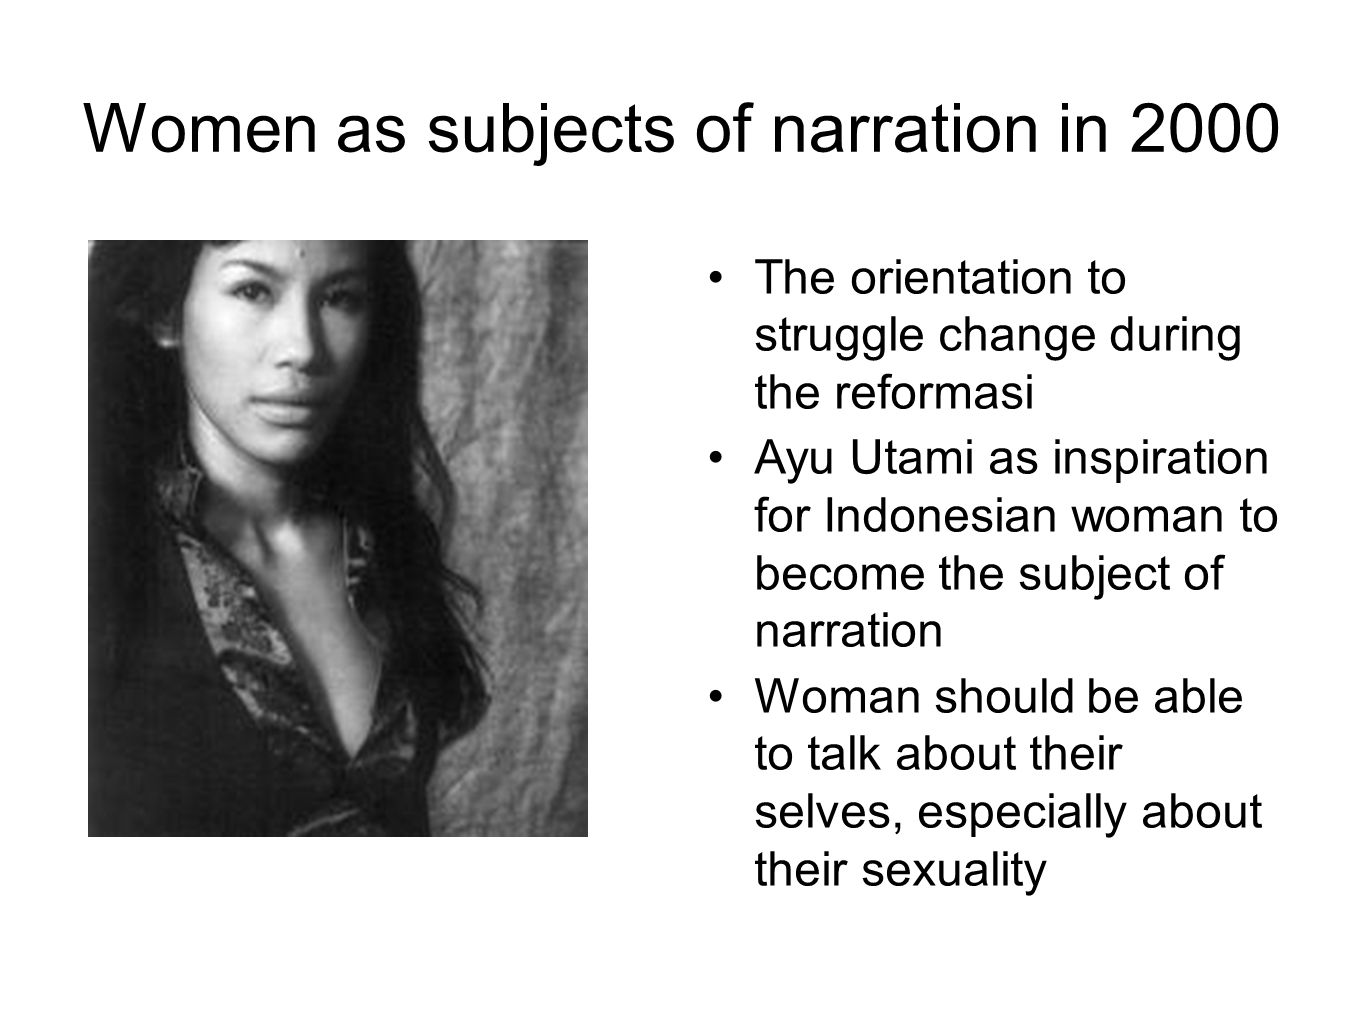 Women as subjects of narration in 2000 The orientation to struggle change during the reformasi Ayu Utami as inspiration for Indonesian woman to become the subject of narration Woman should be able to talk about their selves, especially about their sexuality